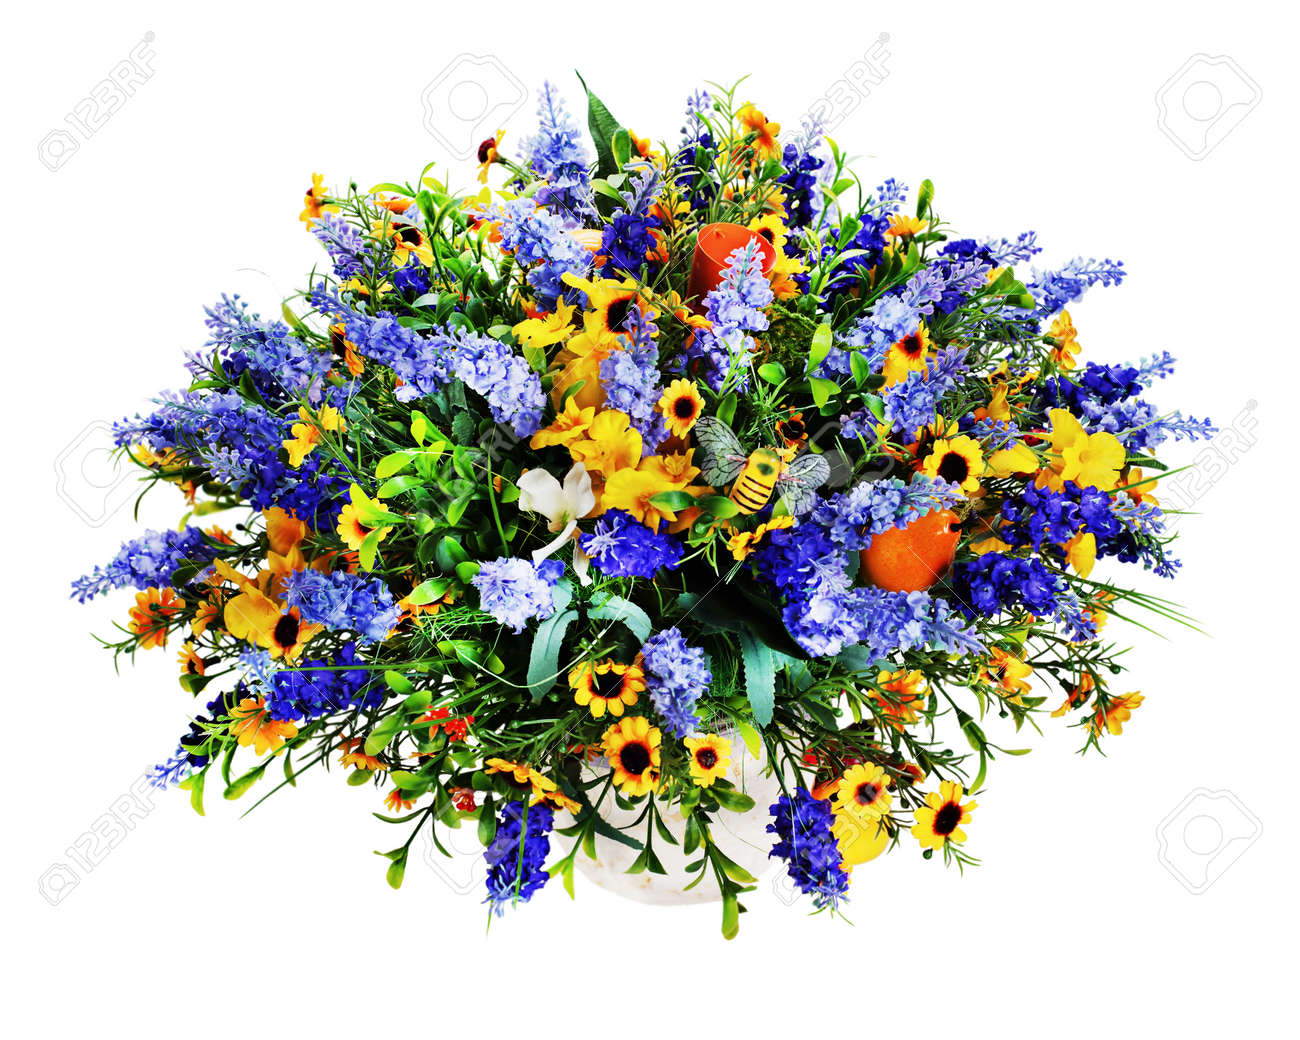 Colorful Floral Bouquet Of Lilies Sunflowers And Irises Flowers